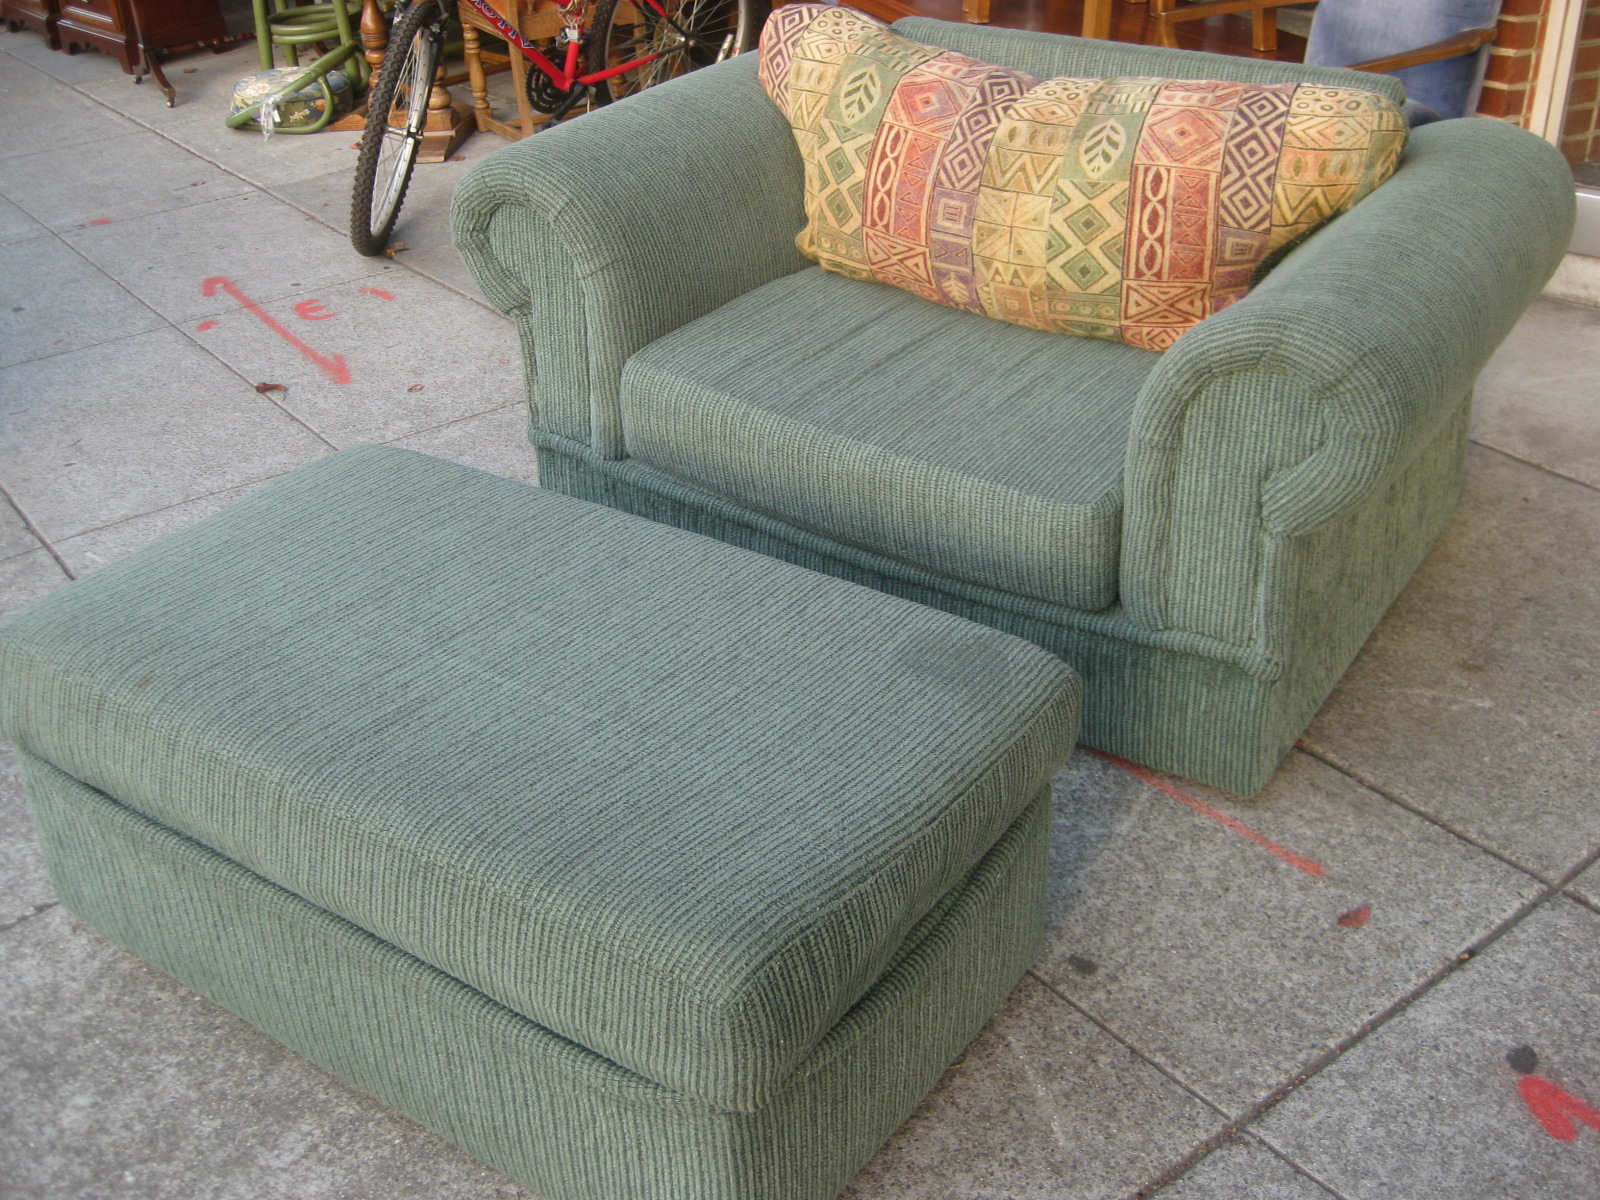 UHURU FURNITURE & COLLECTIBLES: SOLD - Oversized Chair and Ottoman